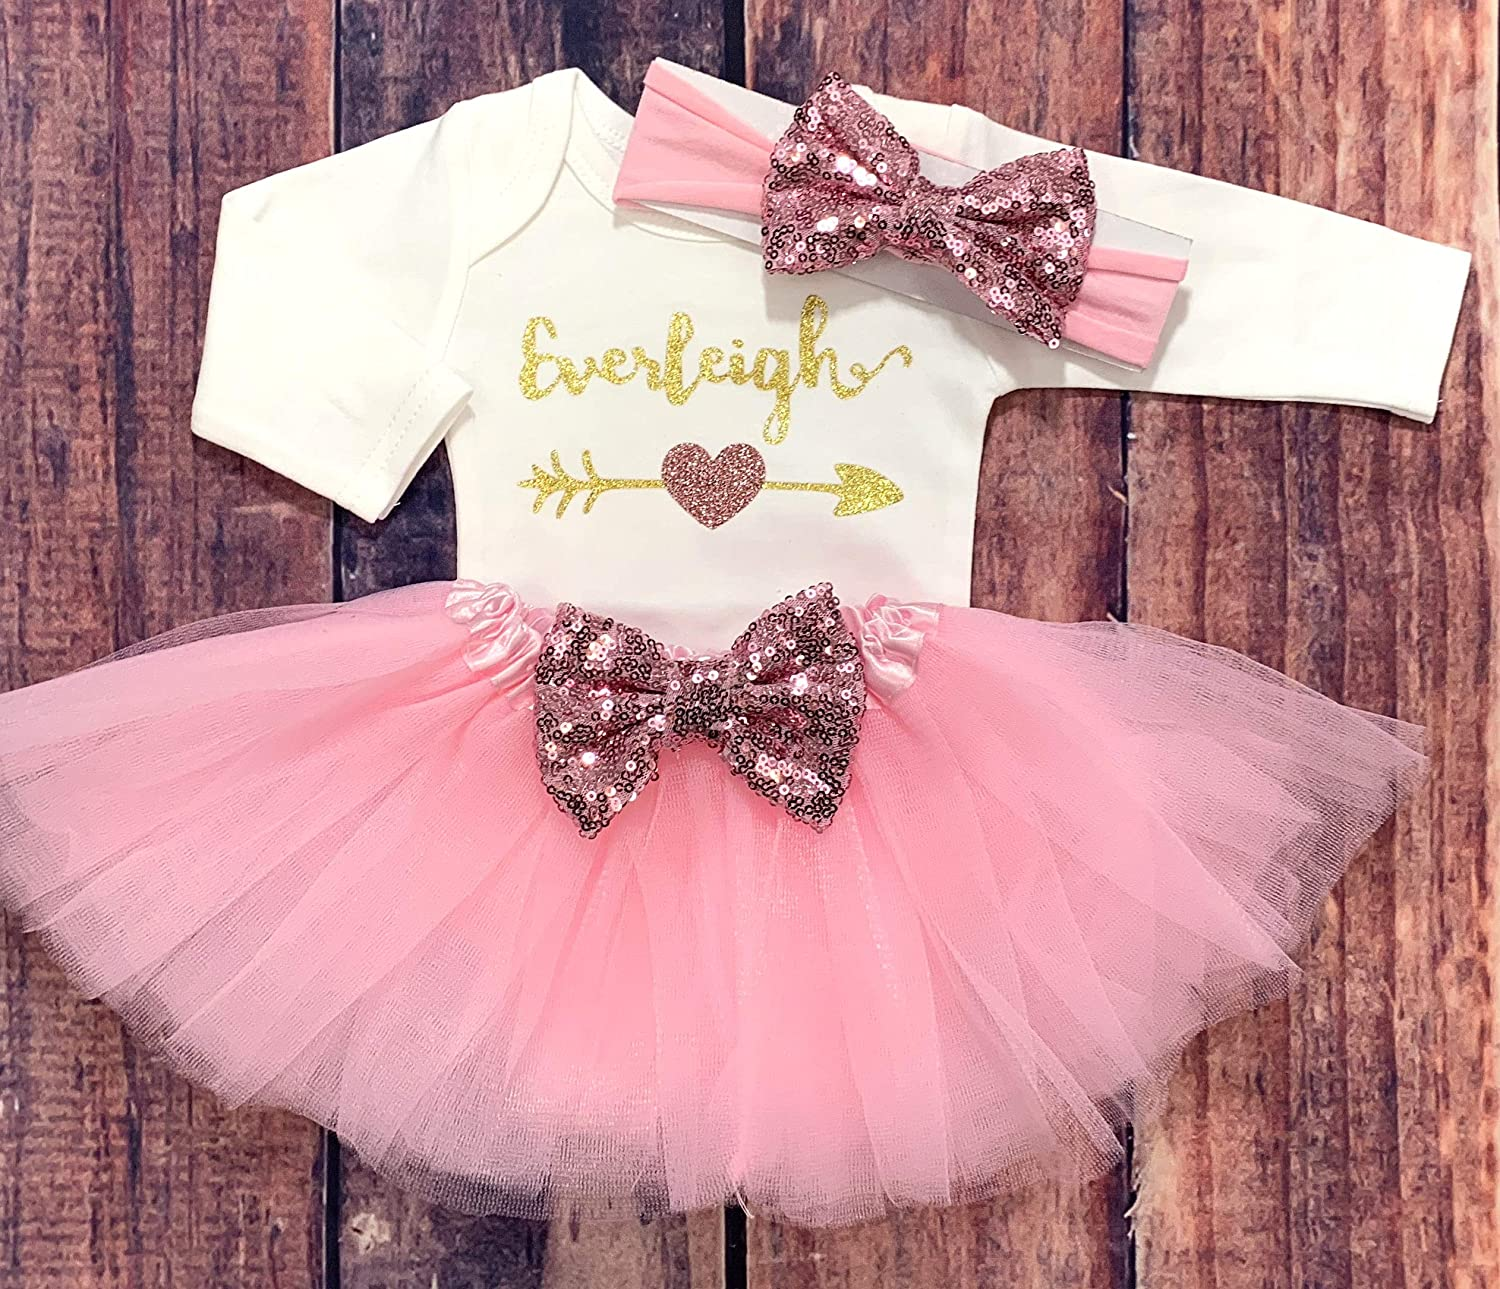 234b9f5fe Amazon.com: Personalized Coming Home Outfit Baby Girl Clothes Take Home  Outfit Personalized Name Shirt Baby Girl Shirt Personalized Baby Shower Gift:  ...